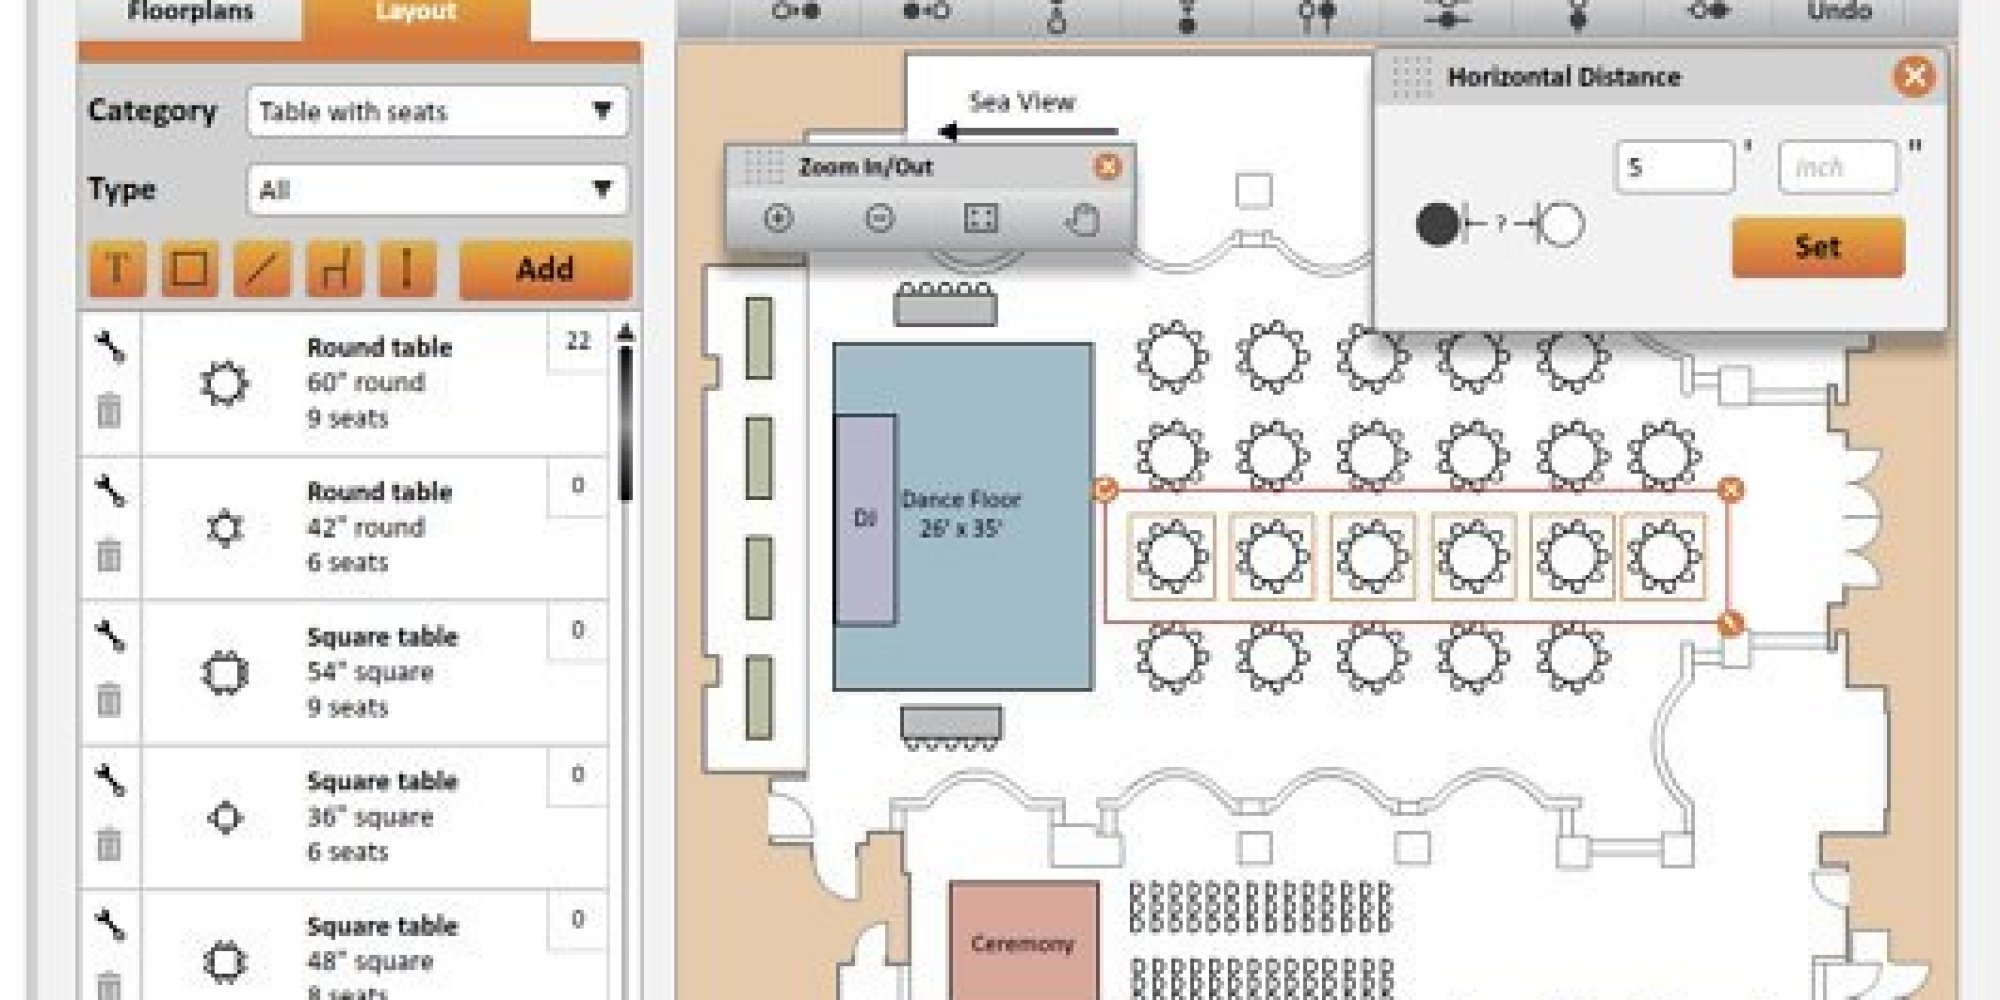 The Best Digital Seating Charts For Wedding Planning Huffpost